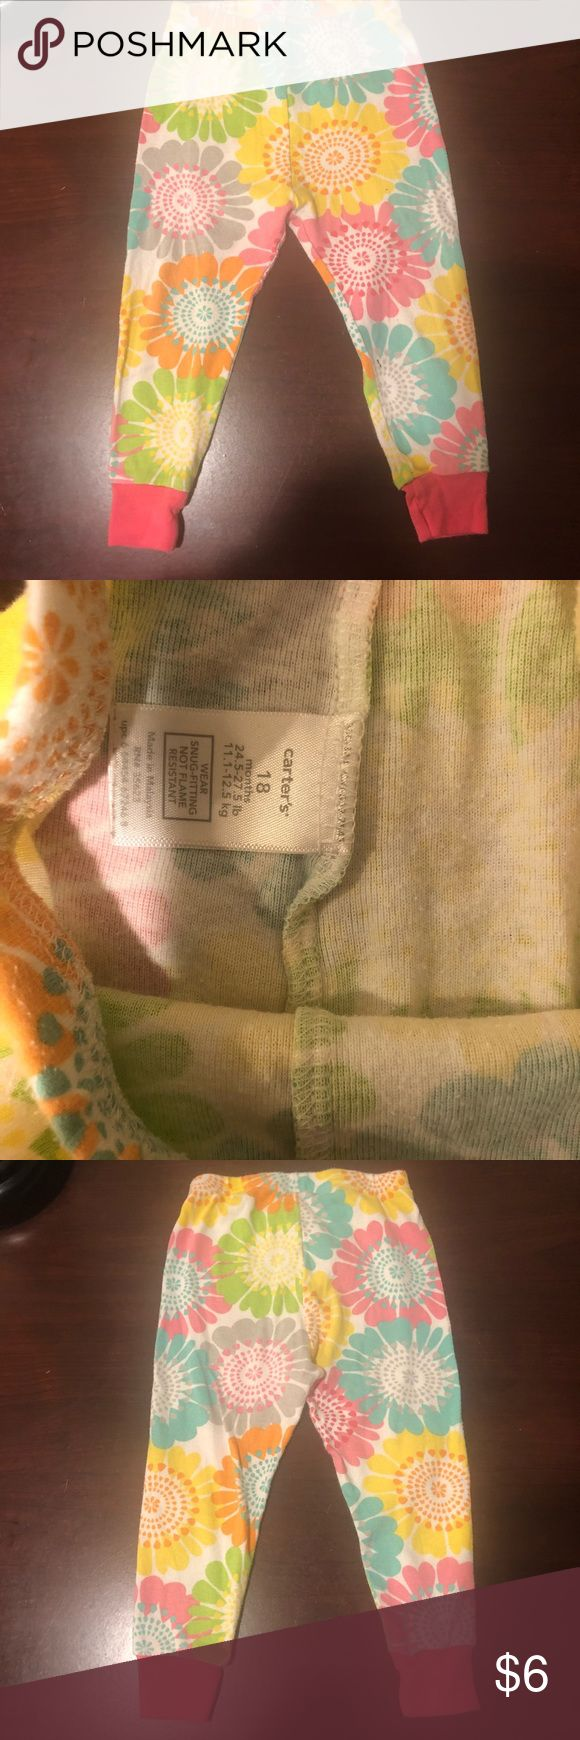 Carters baby girl PJ pant Carters baby girl PJ pant.. there is pilling Carter's Pajamas Pajama Bottoms #babygirlpajamas